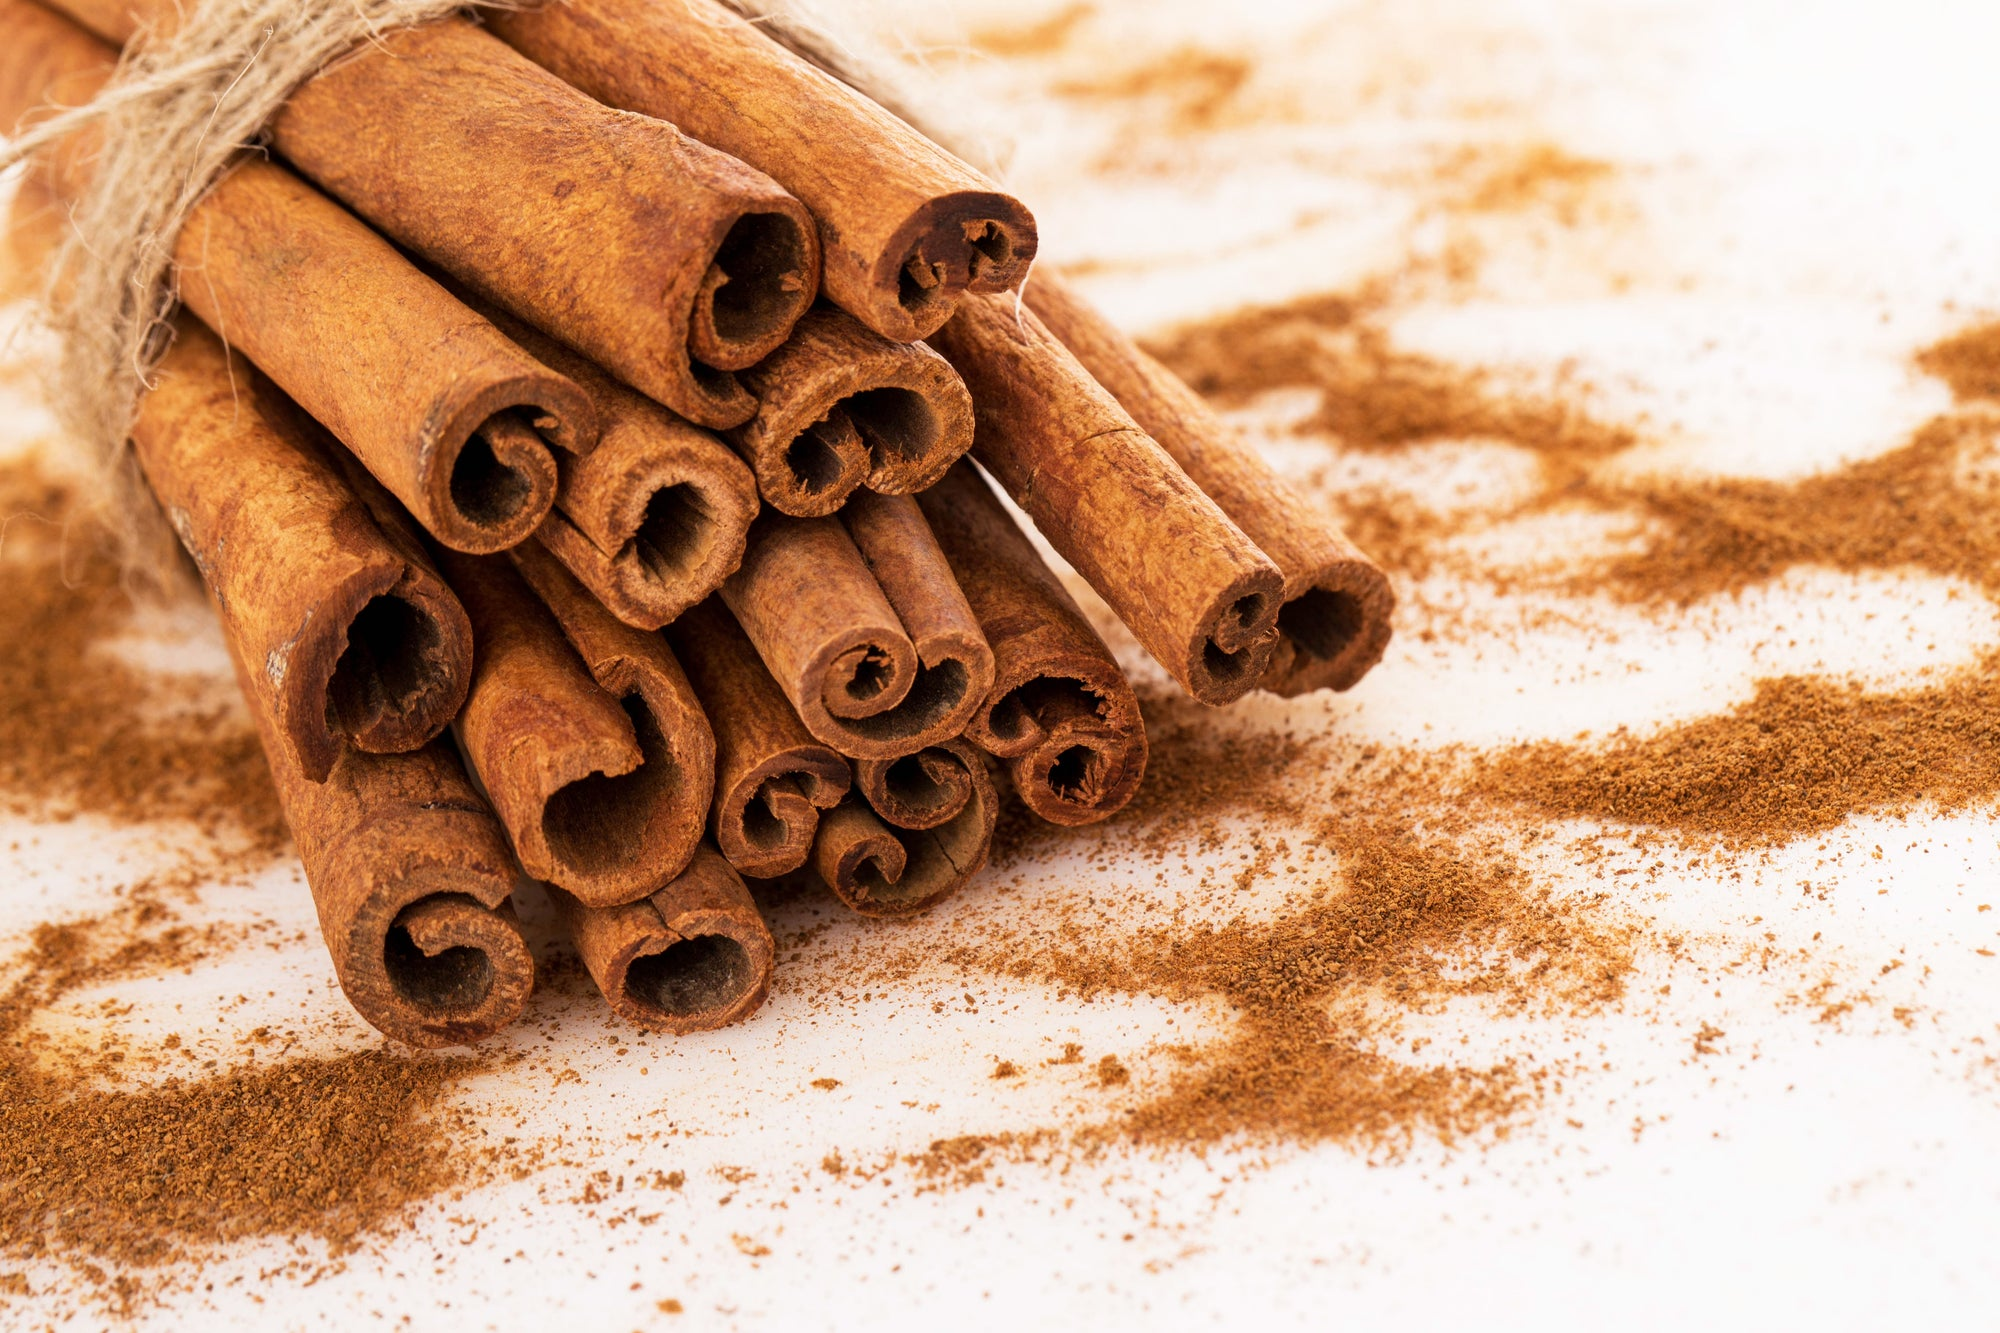 Cinnamon: 10 Interesting Facts About The Classic Spice